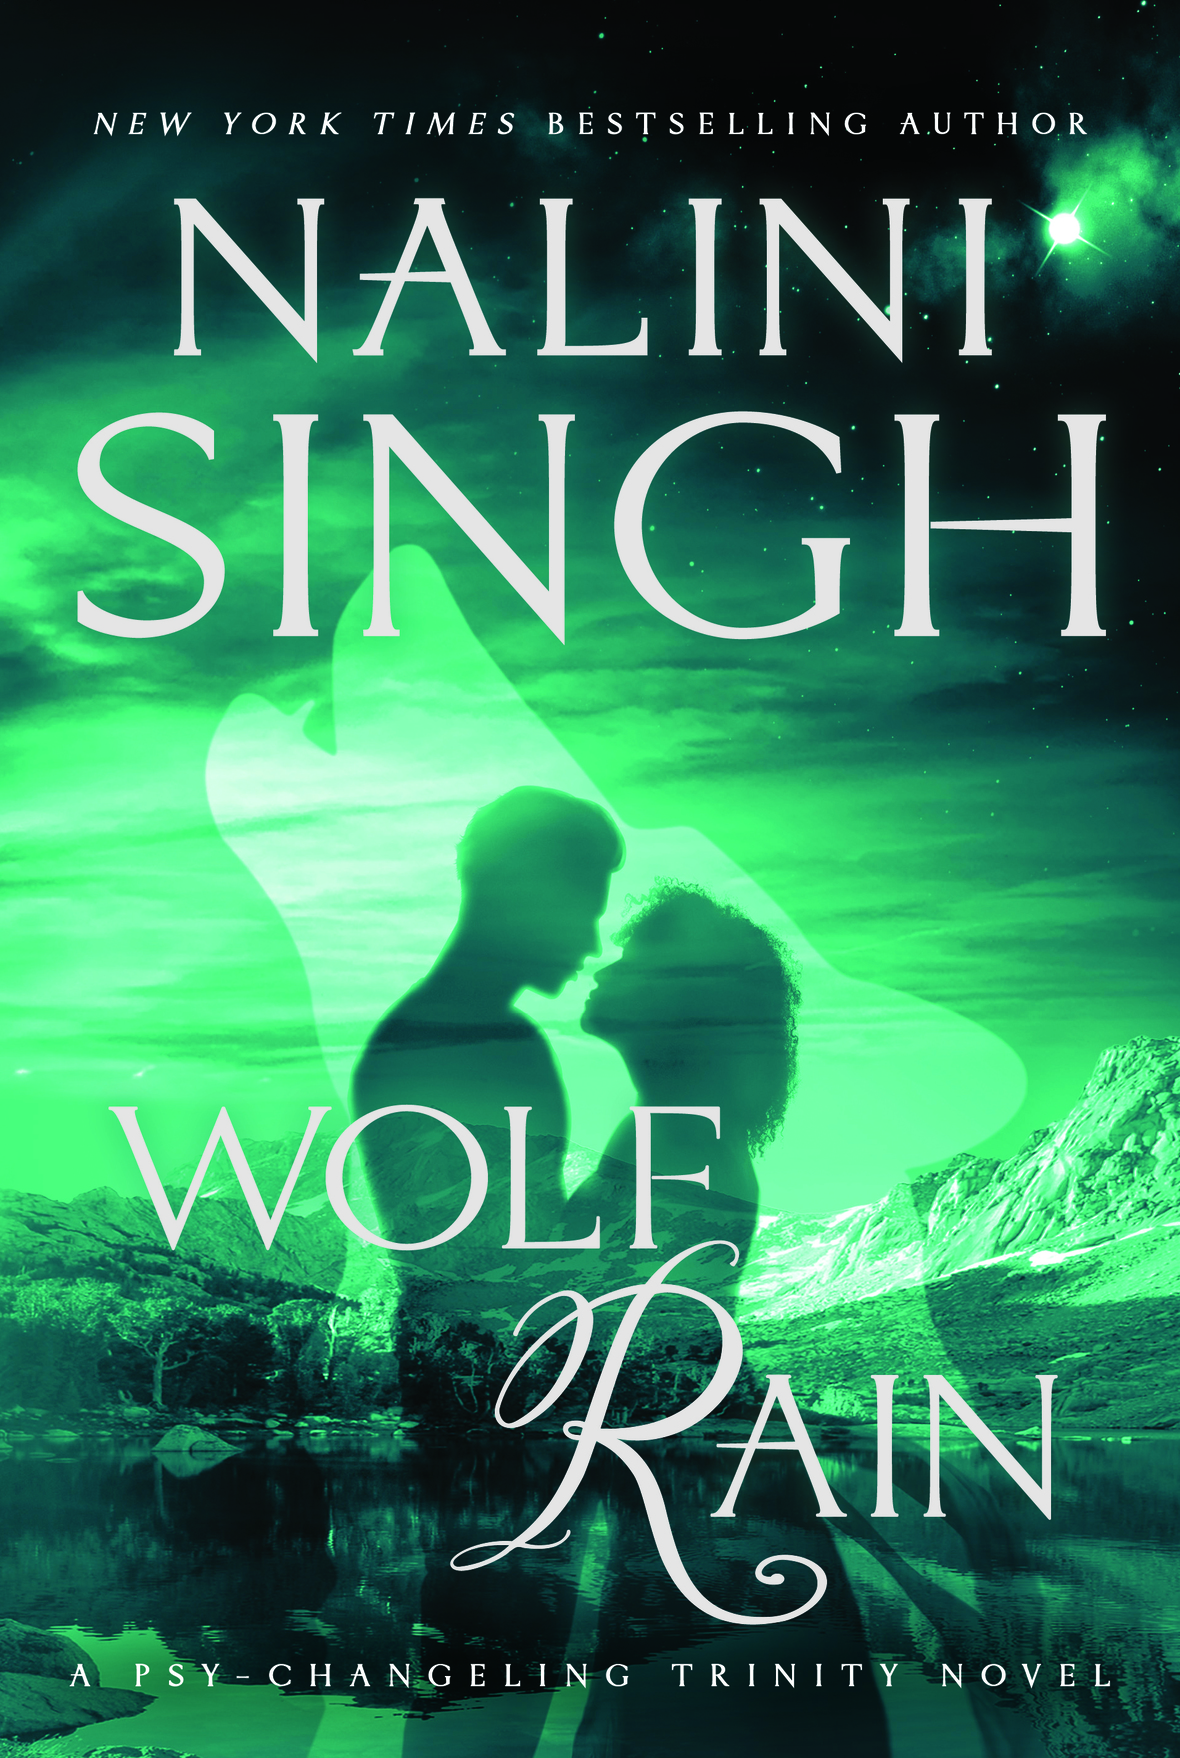 Nalini's Newsletter - Welcome Short Stories